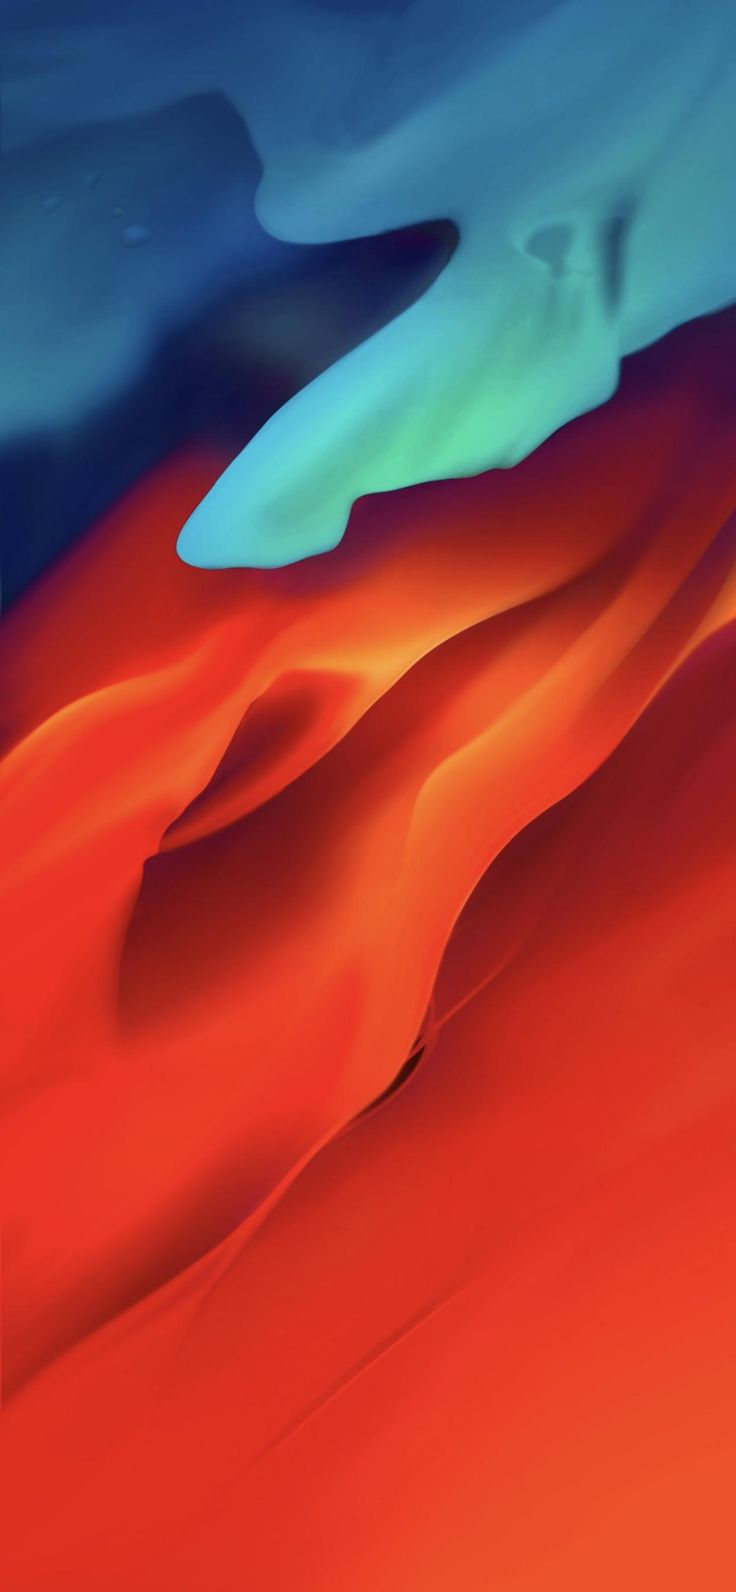 Lenovo Z6 pro  | iPhone X Wallpapers #iPhoneXWallpaper Check more at ph.hotrated… – Hotratedproduct.net